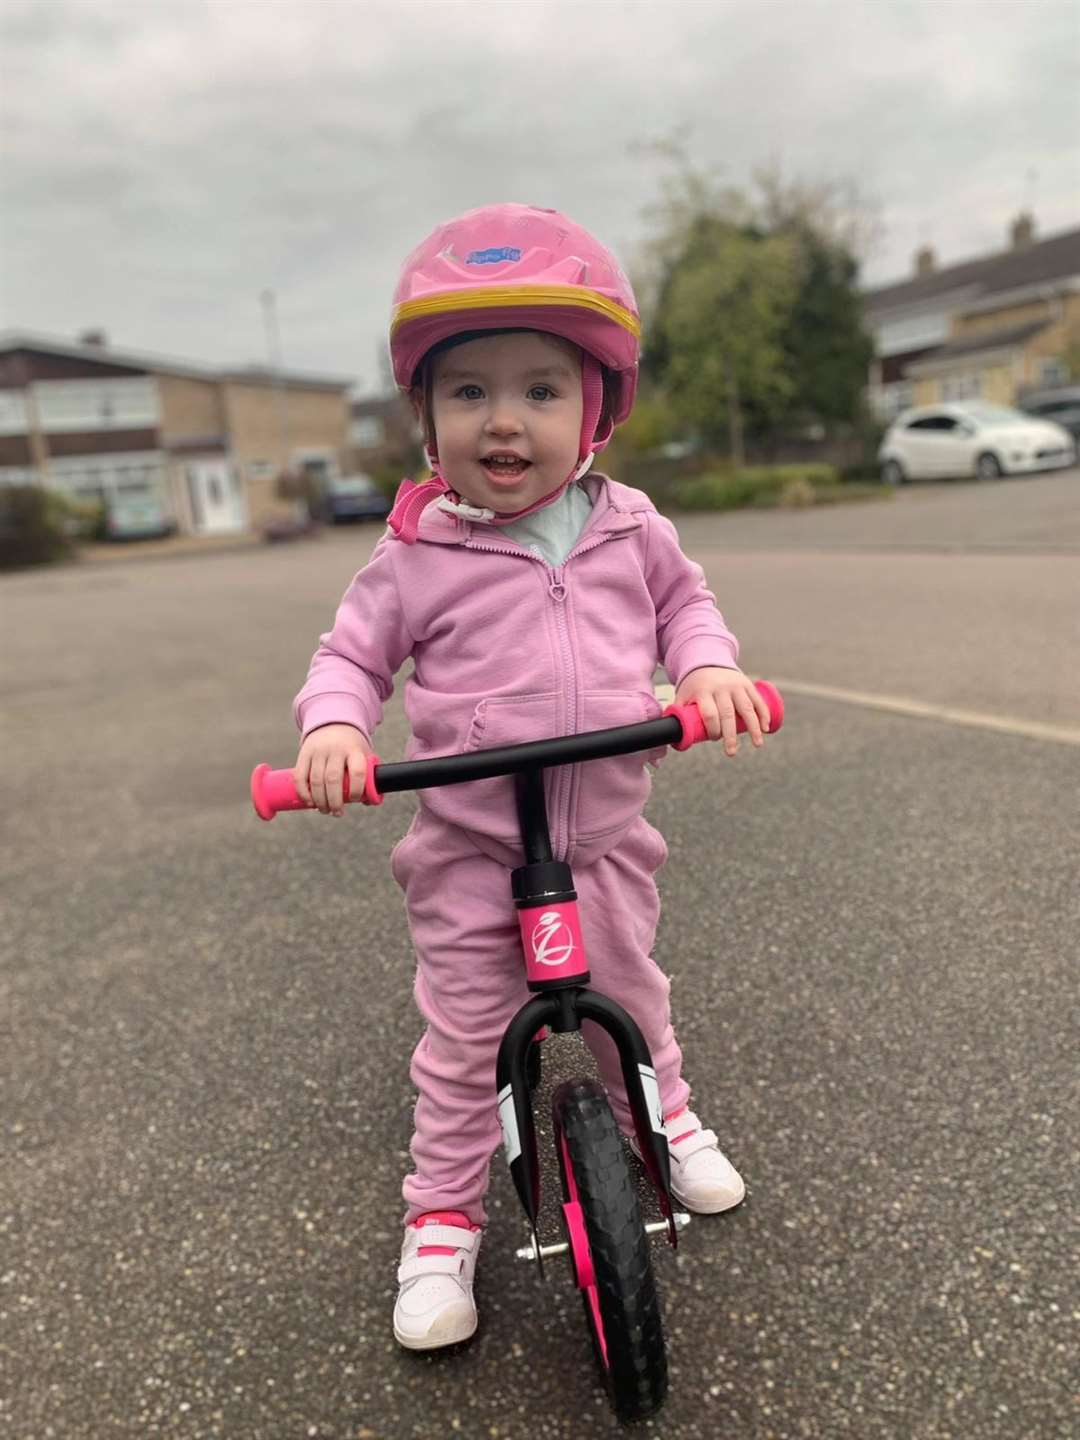 Molly Marsh, 2, on her bike ride for the NHS (34283936)